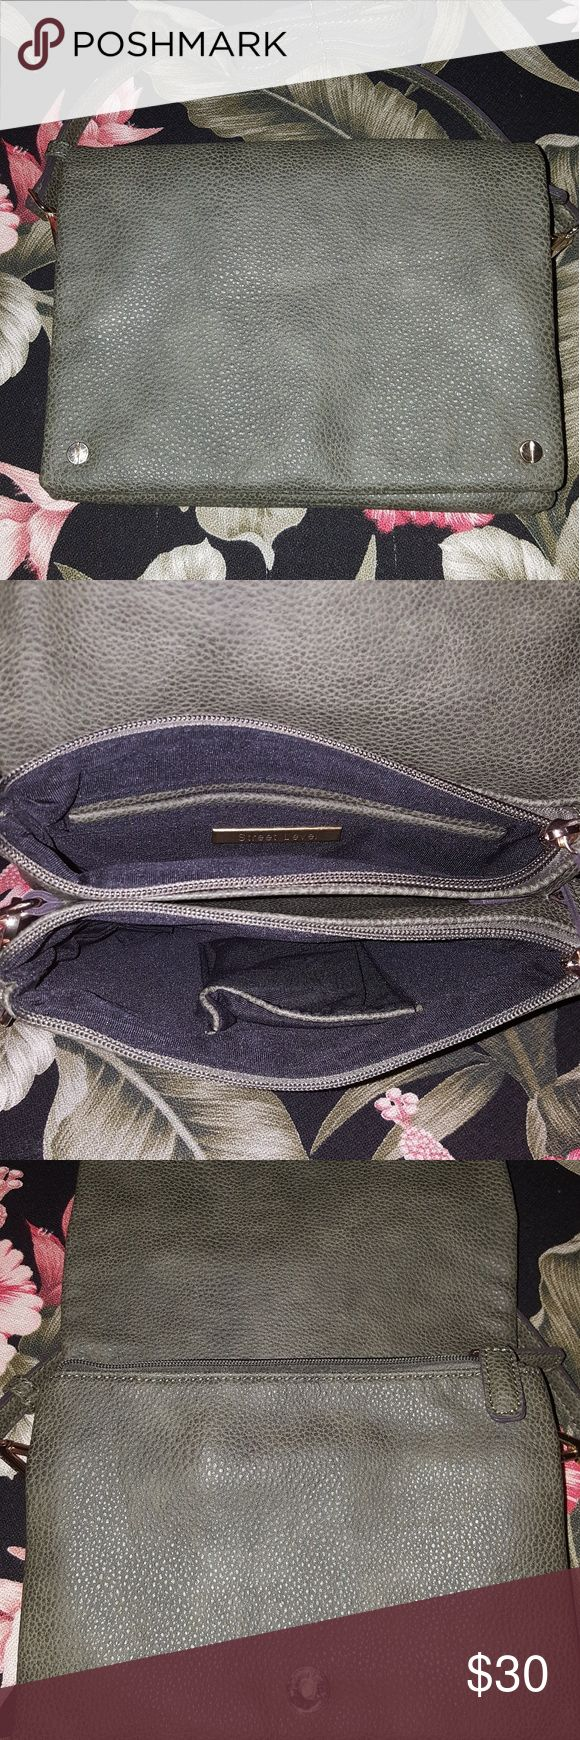 """Purse ***ON SALE FOR 24HRS ONLY***Olive Green crossbody Bag w/ Magnetic Flap, 7 pockets (Three Zipper Pockets) and Adjustable Shoulder strap. 7 3/4"""" (h) 9 1/2"""" (w) and in excellent condition. Brand: Street Level other Bags Shoulder Bags"""